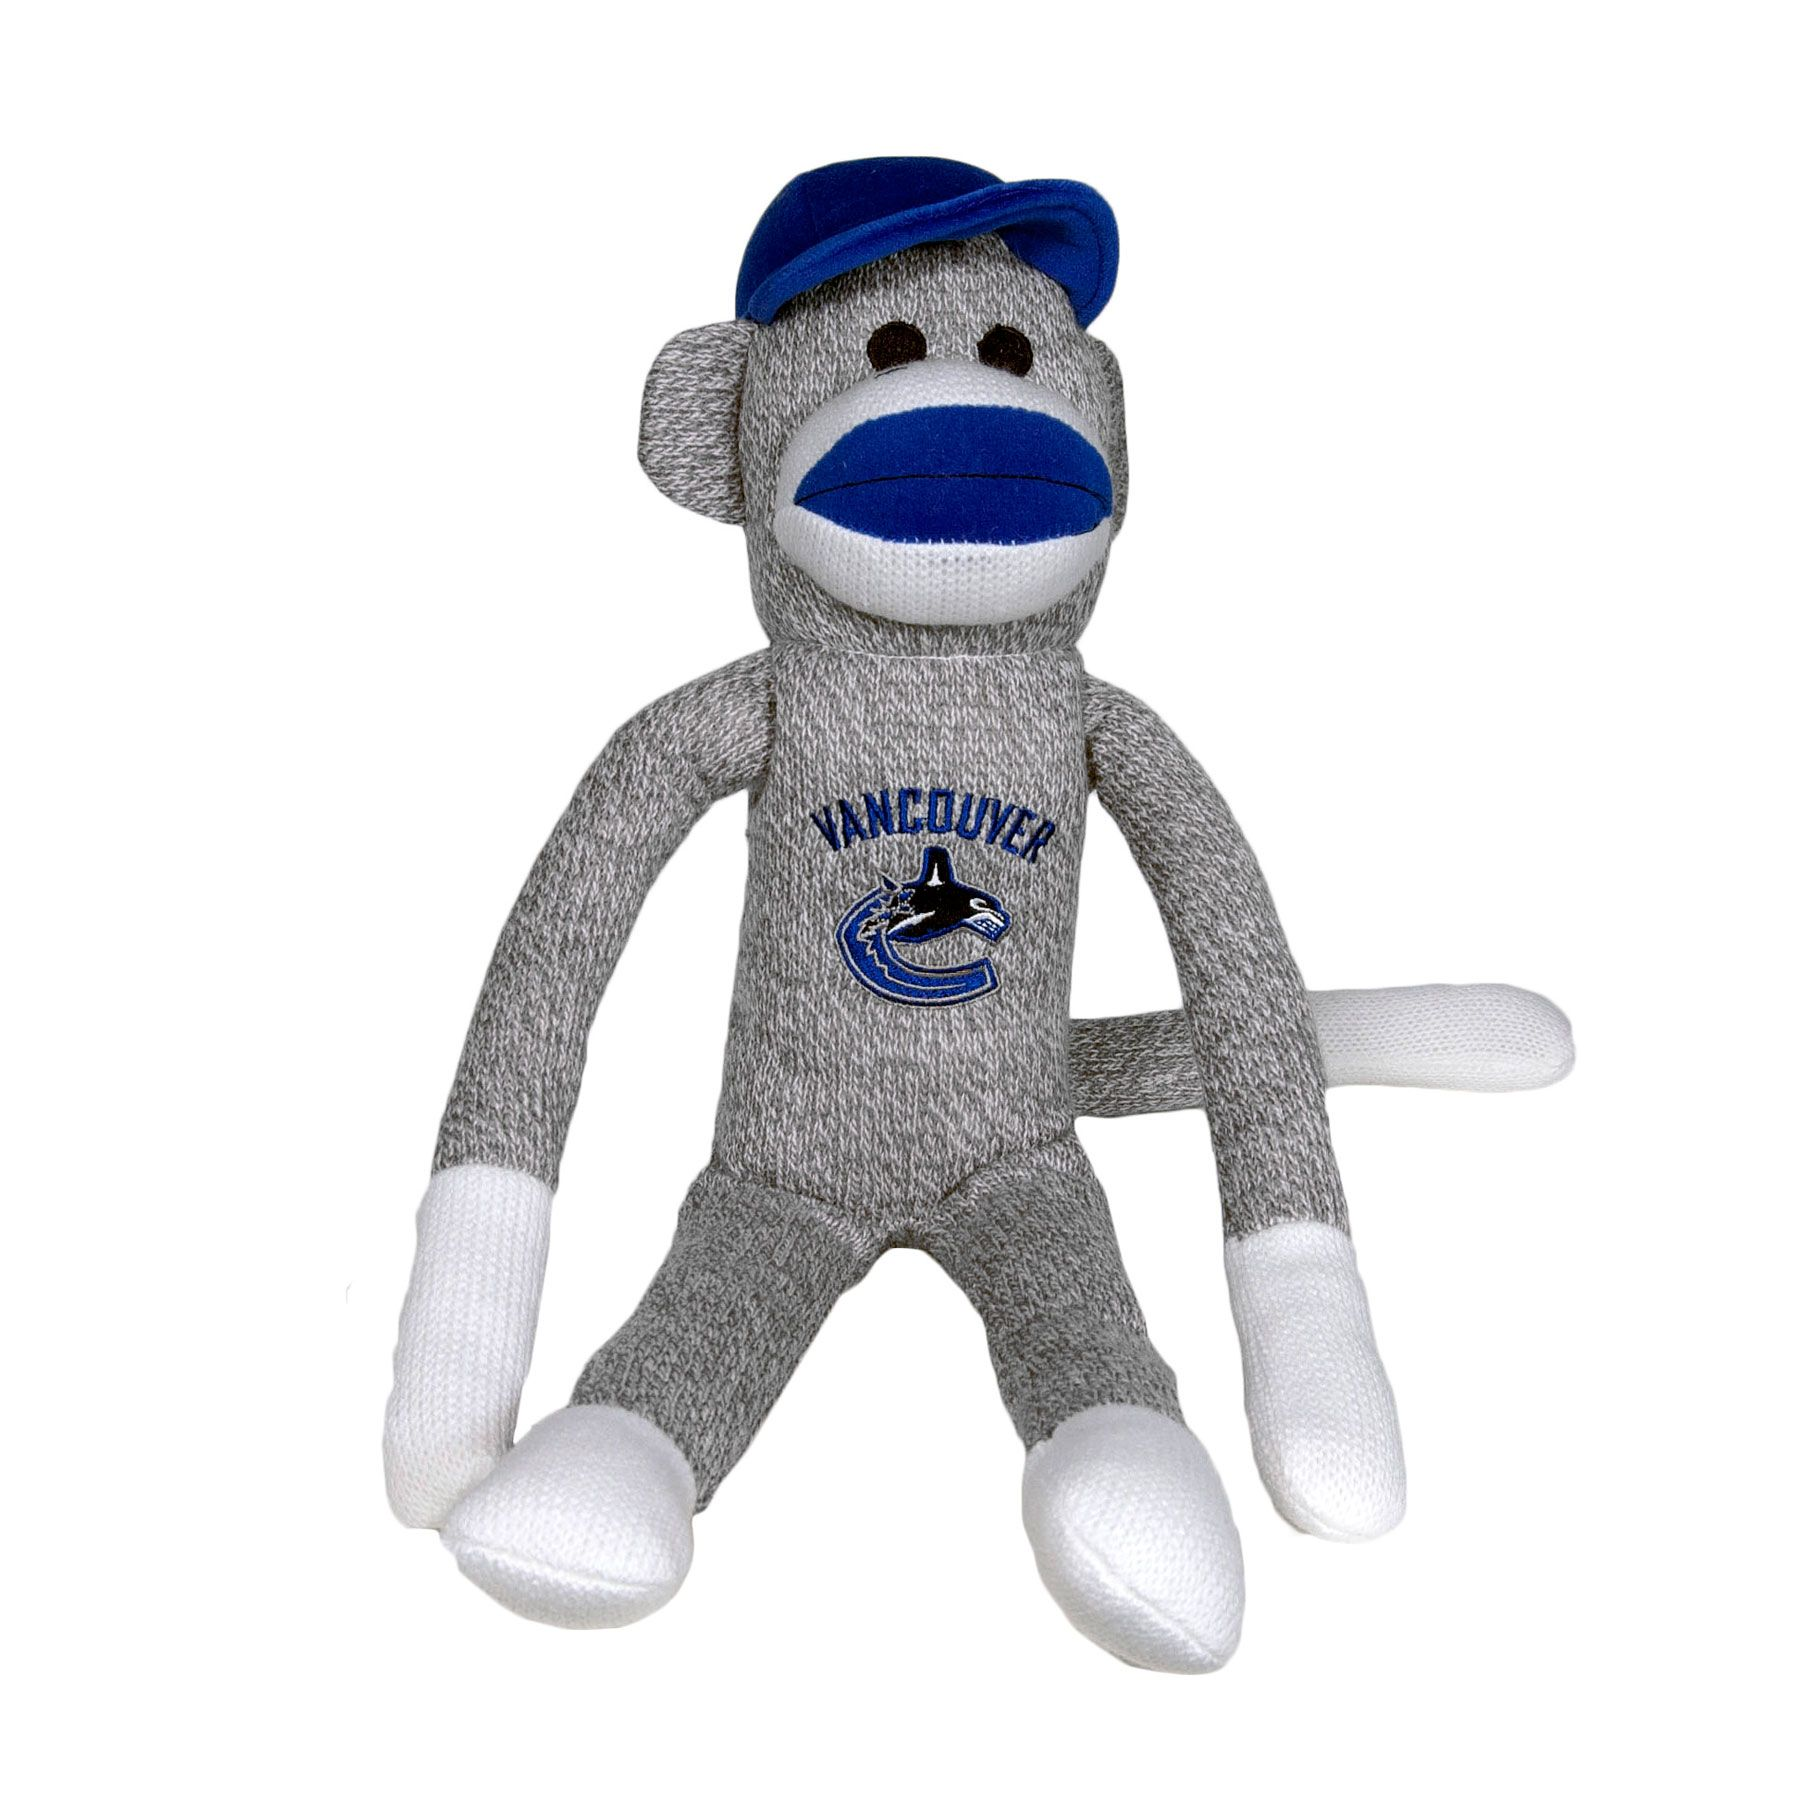 Vancouver Canucks 27 Inch Plush Sock Monkey Icejerseys Com Canada Official Fan Shop Canucks Vancouver Canucks Sock Monkey